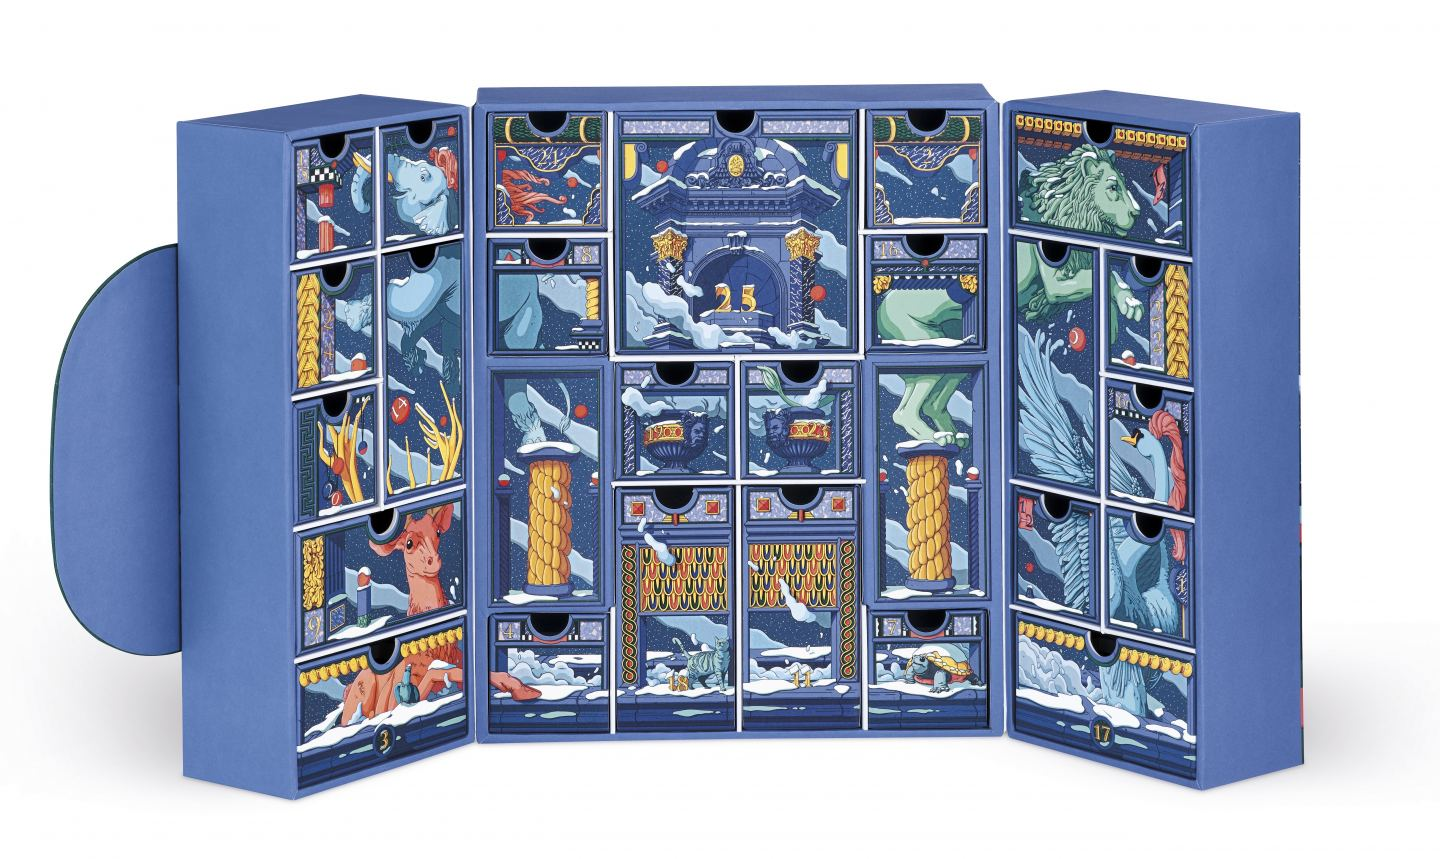 Introducing The Diptyque Advent Calendar 2020! SPOILERS INSIDE!